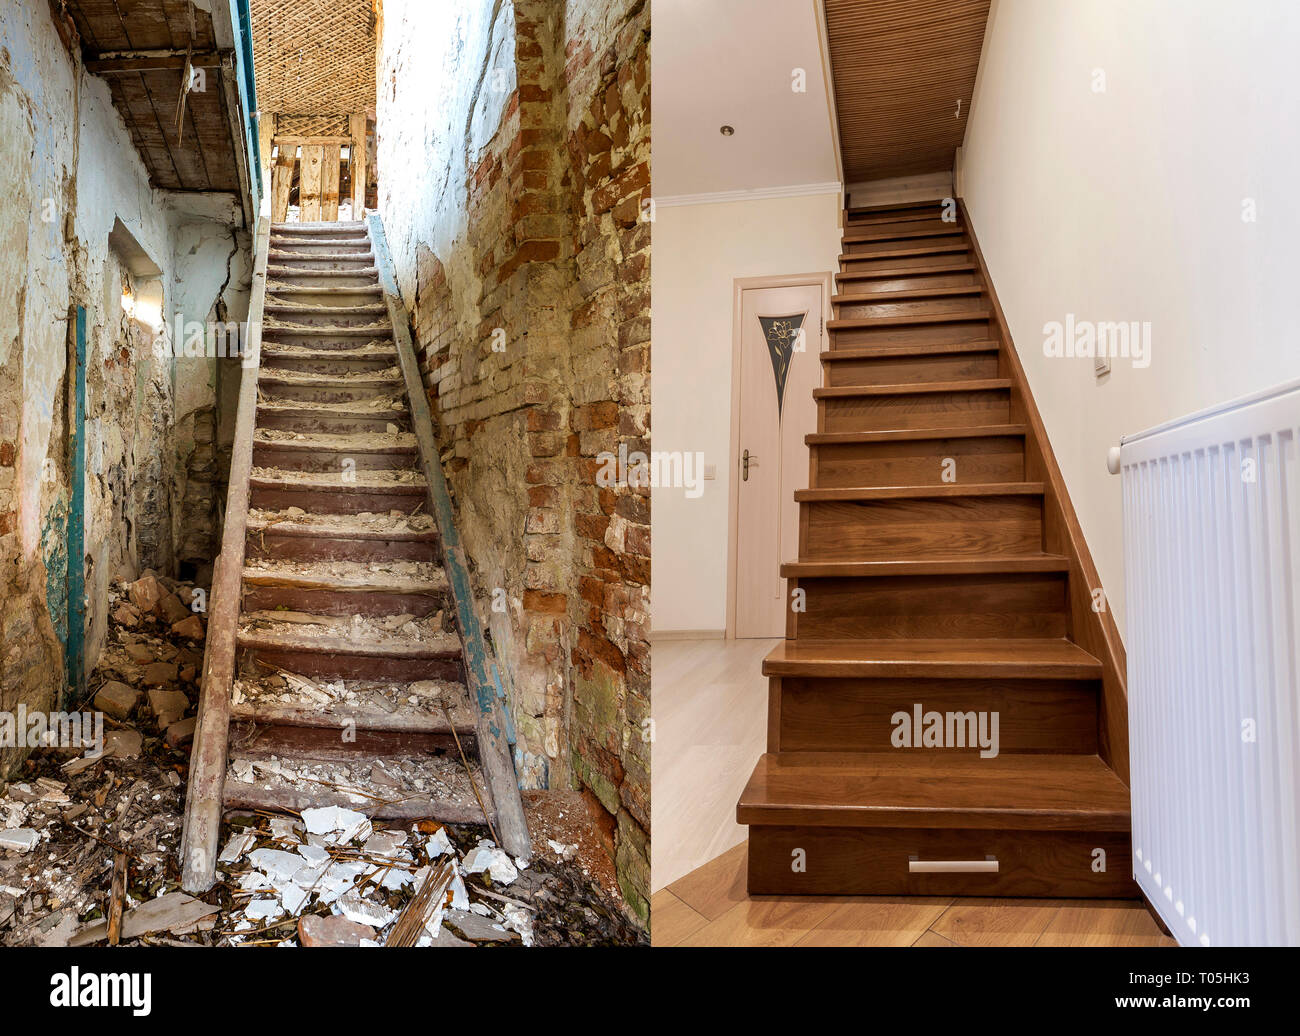 Comparison Of Modern Brown Wooden Staircase In New Renovated Apartment Interior And Old Ladder Stairs Before Renovation And After House Reconstructio Stock Photo Alamy,Parmesan Crusted Chicken